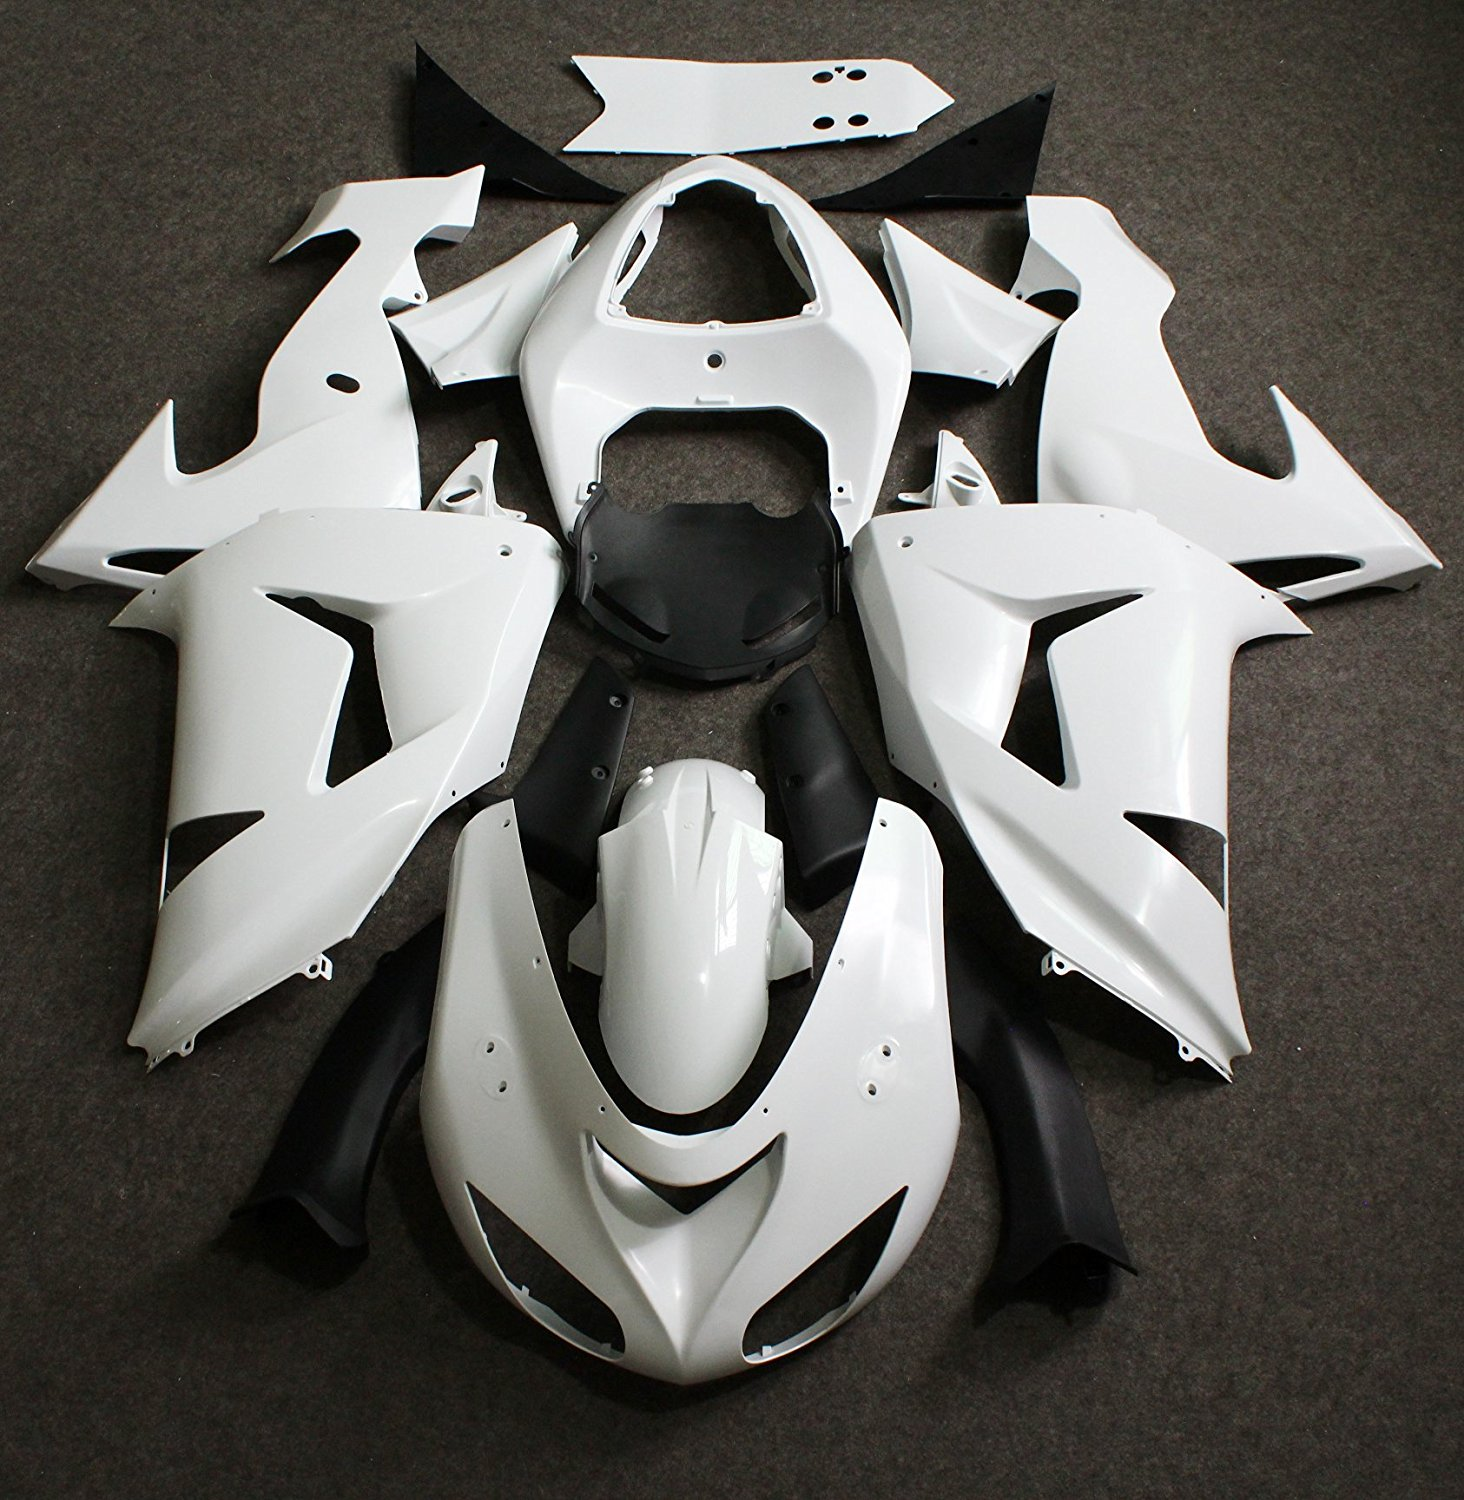 Motorcycle Unpainted Fairing Kit For Kawasaki Ninja ZX-10R ZX10R 2006 - 2007 ZX 10R 06 07 Bodywork Fairings Injection Molding maman для воды rt 17 утка